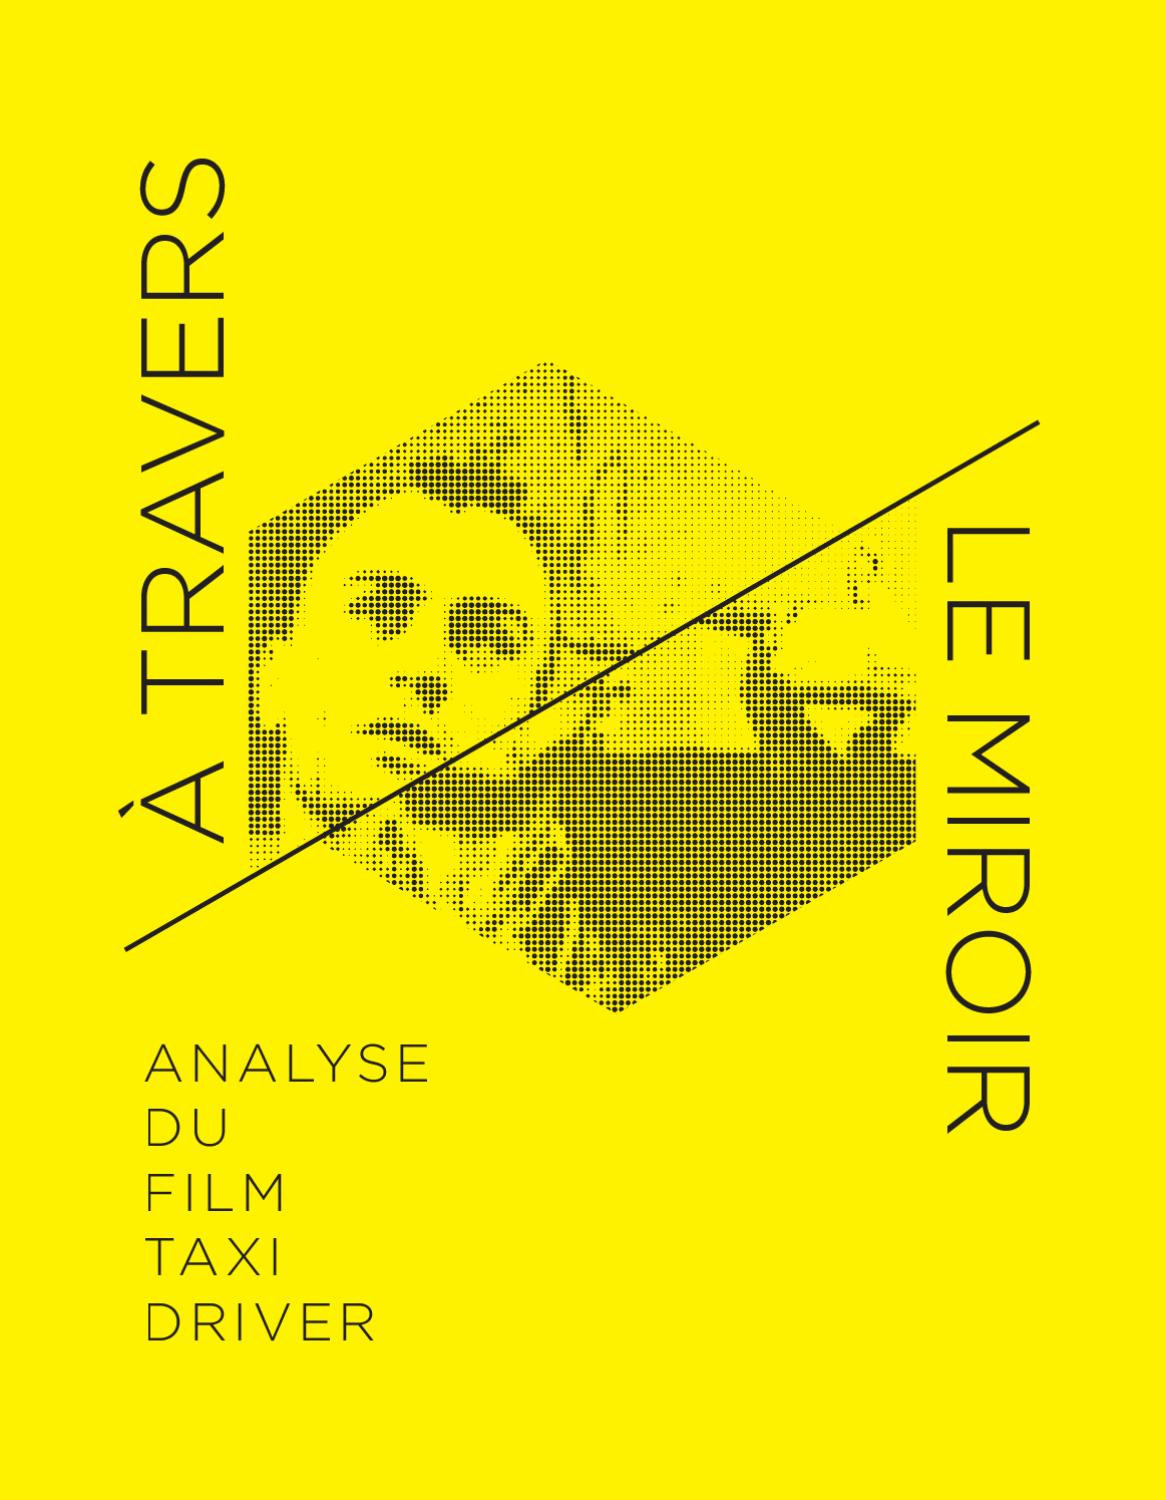 A travers le miroir analyse du film taxi driver by for A travers le miroir